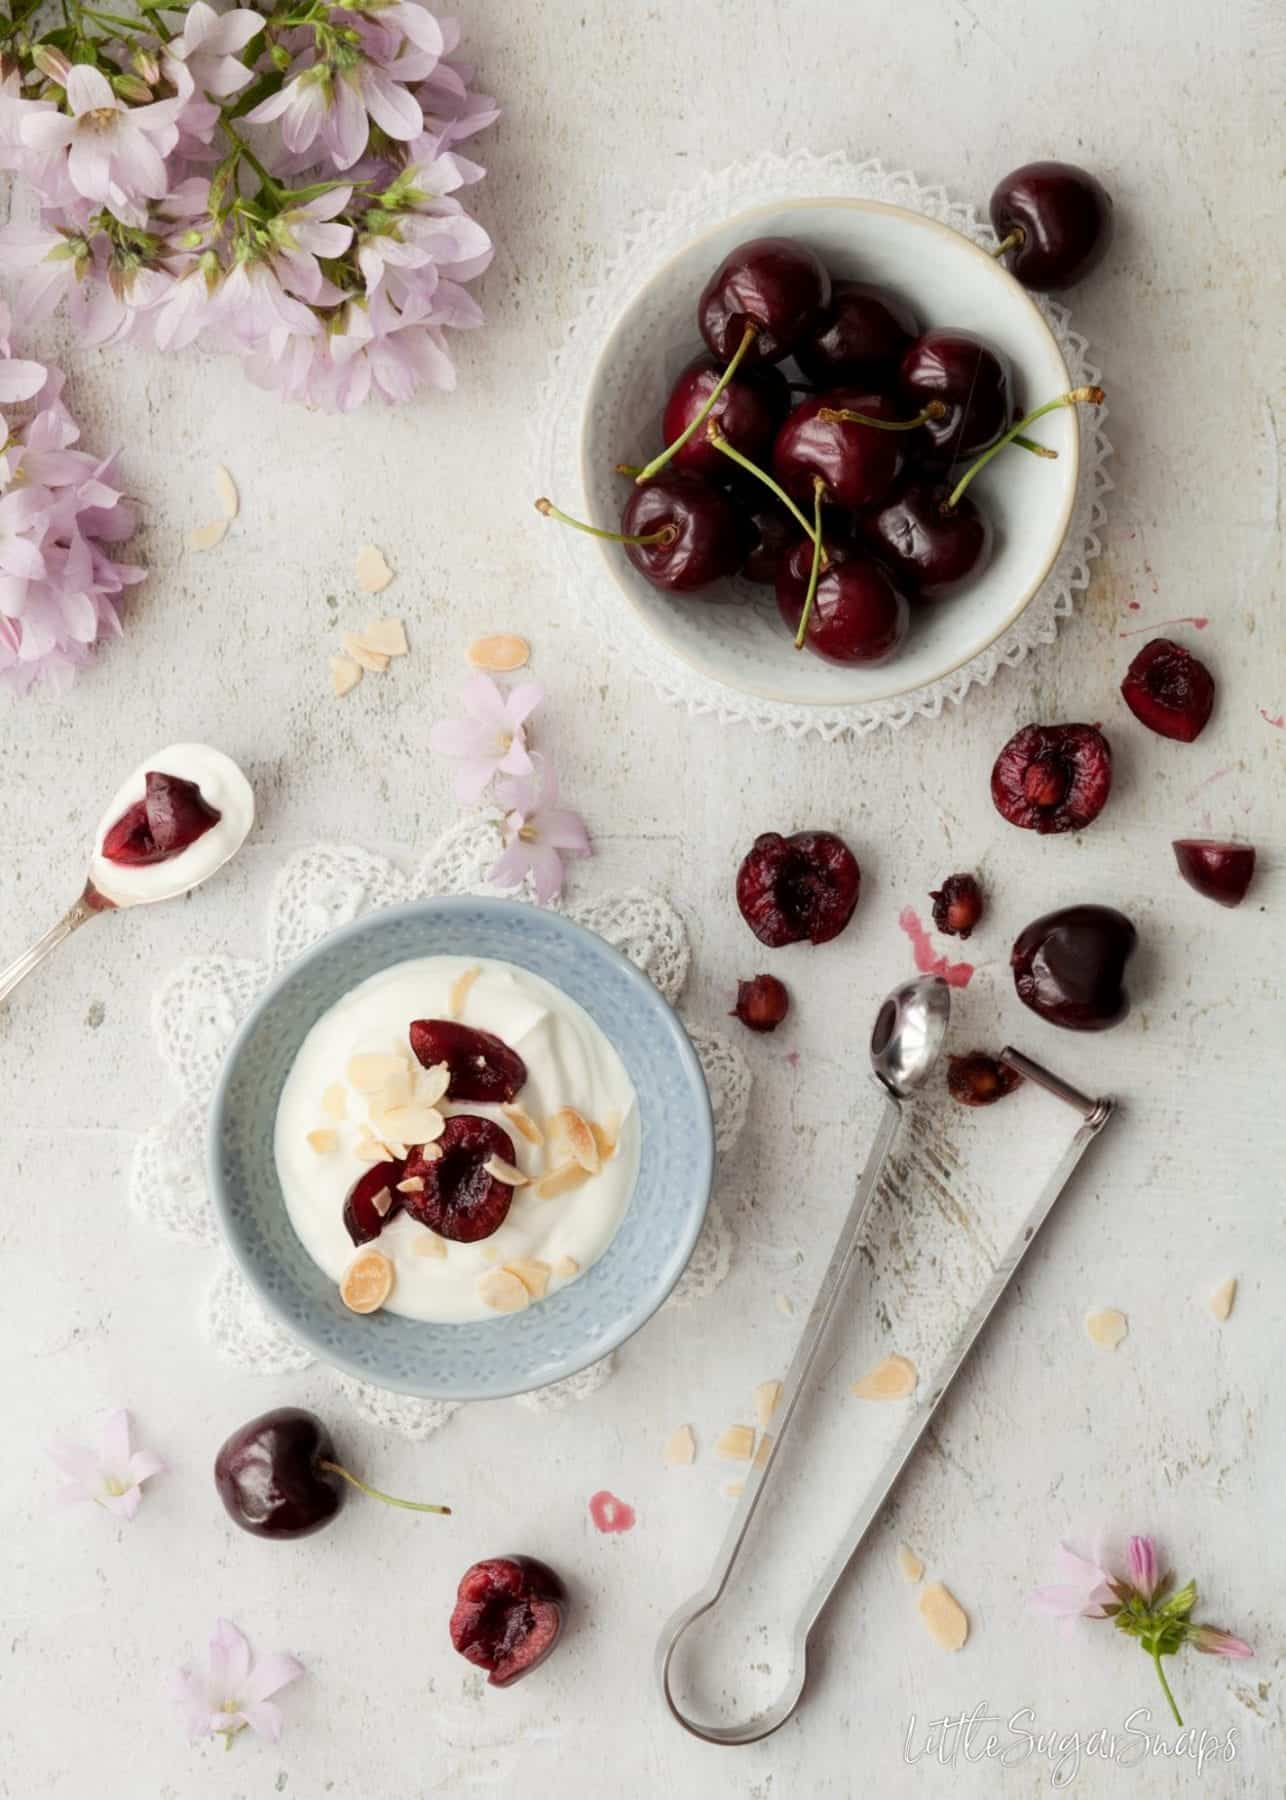 Fresh cherries with a bowl of yoghurt.